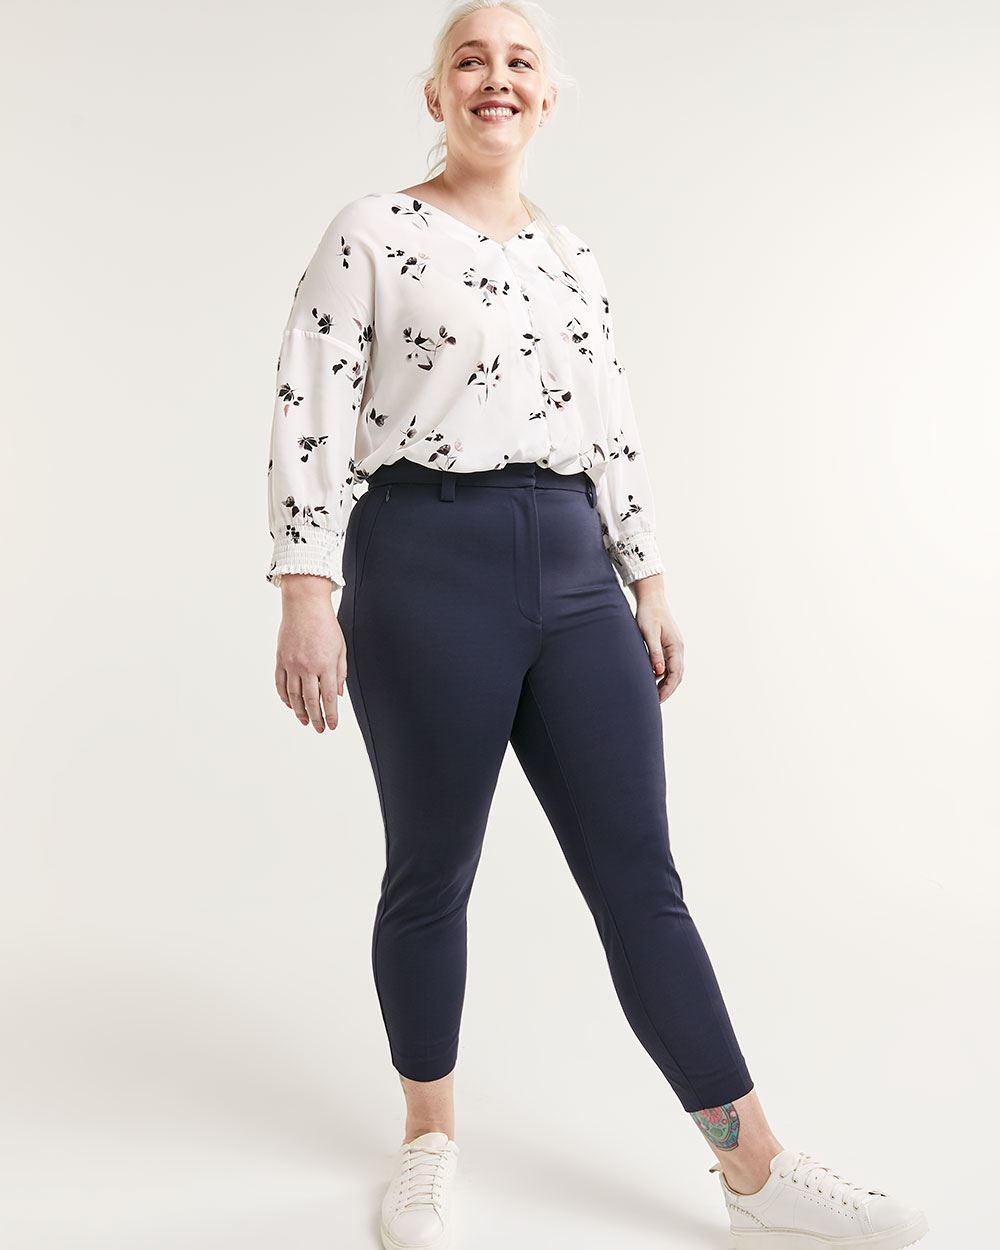 Super High Rise Ankle Pants The Curvy - Tall